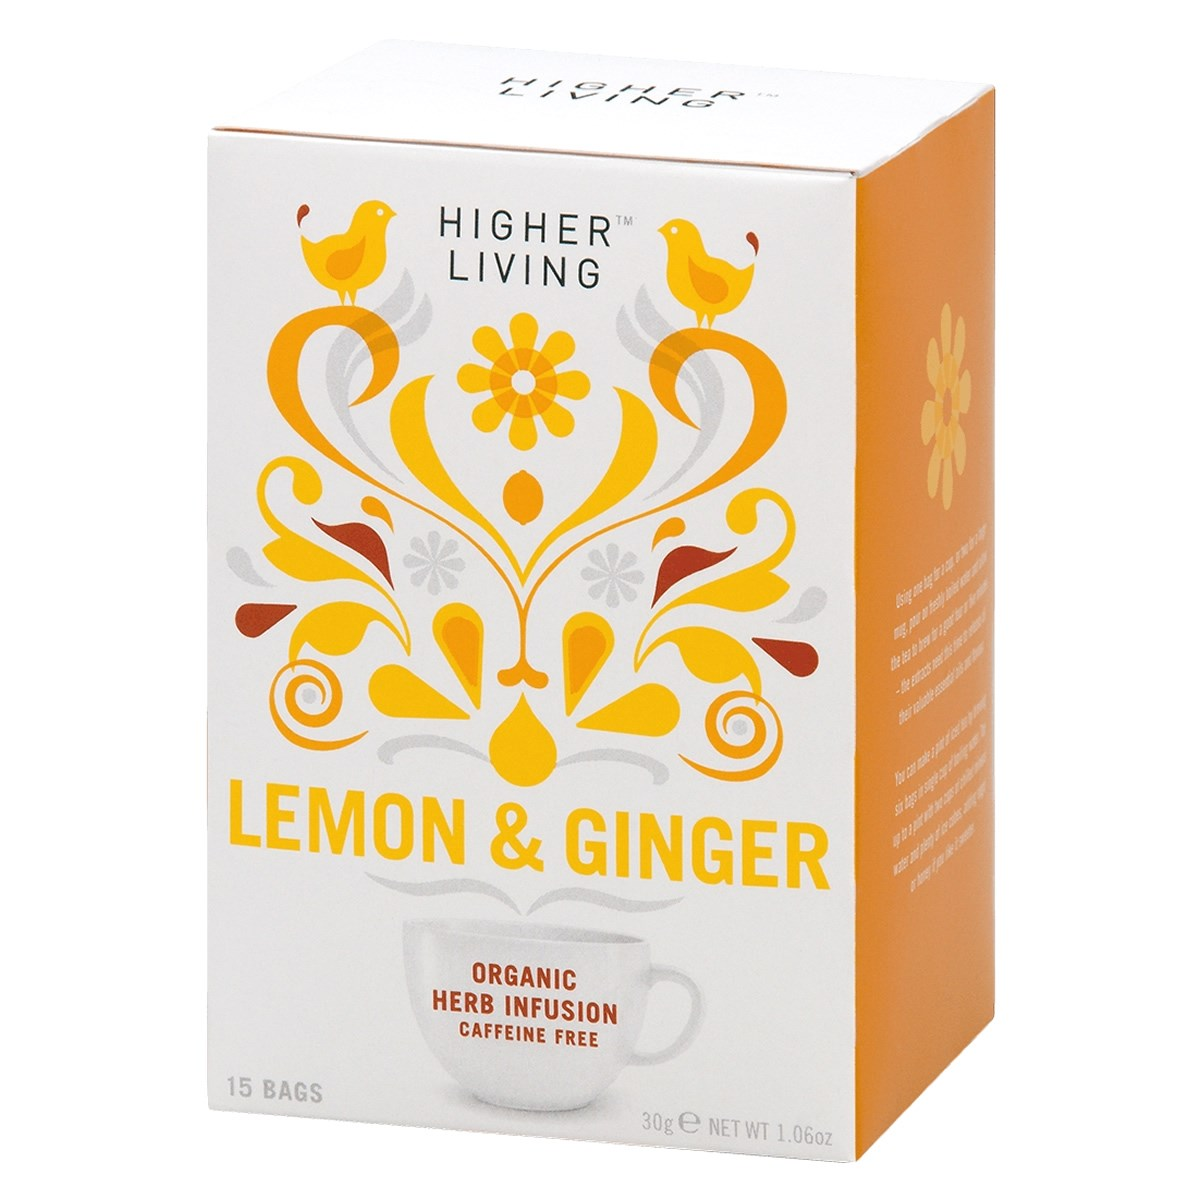 Higher Living Lemon & Ginger Tea